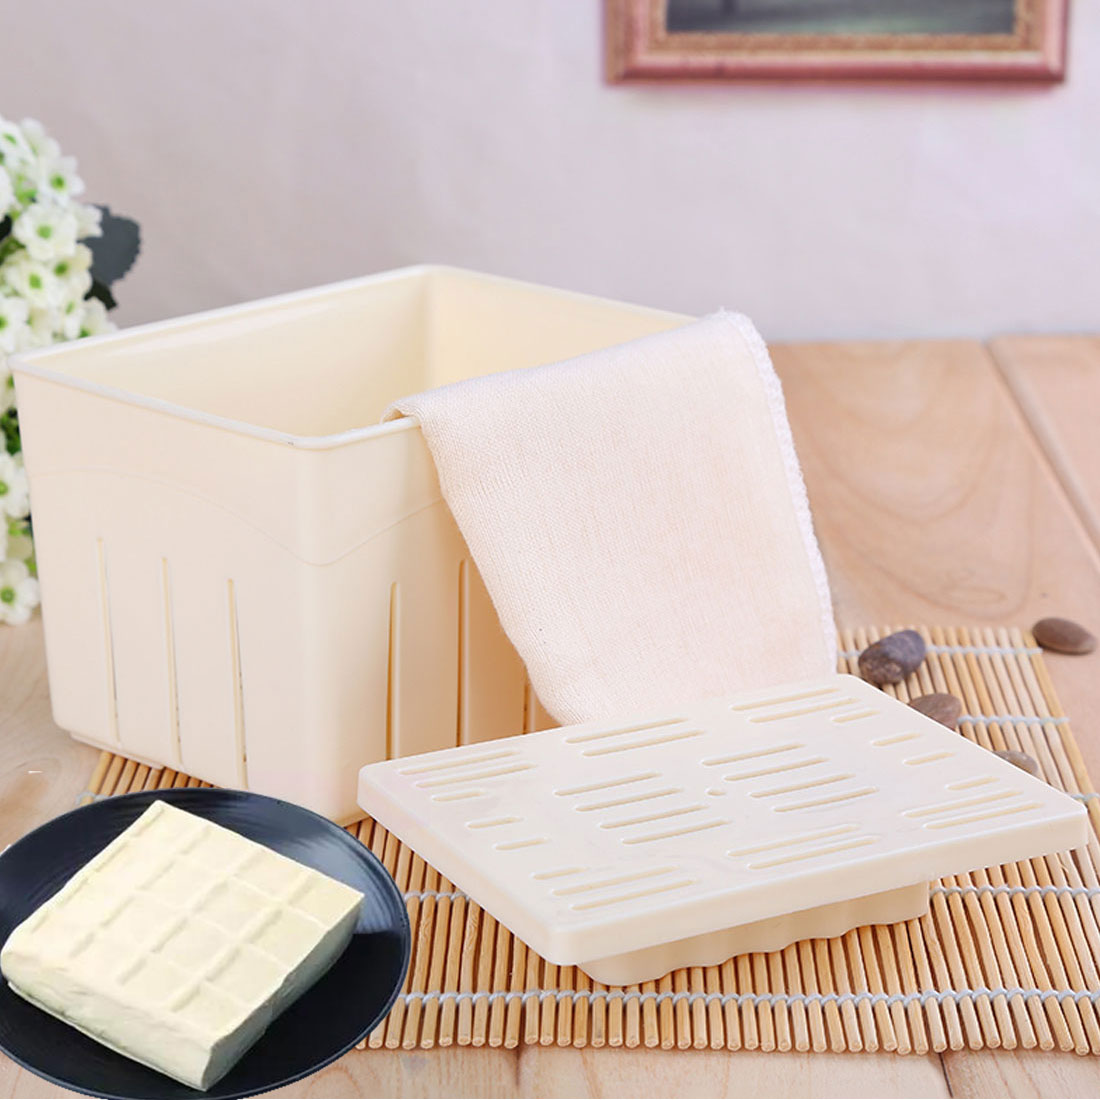 DIY Tofu <font><b>Mold</b></font> Plastic Tofu Press Mould Homemade Soybean Curd Tofu Making <font><b>Mold</b></font> With <font><b>Cheese</b></font> Cloth Kitchen Cooking Tool Set image